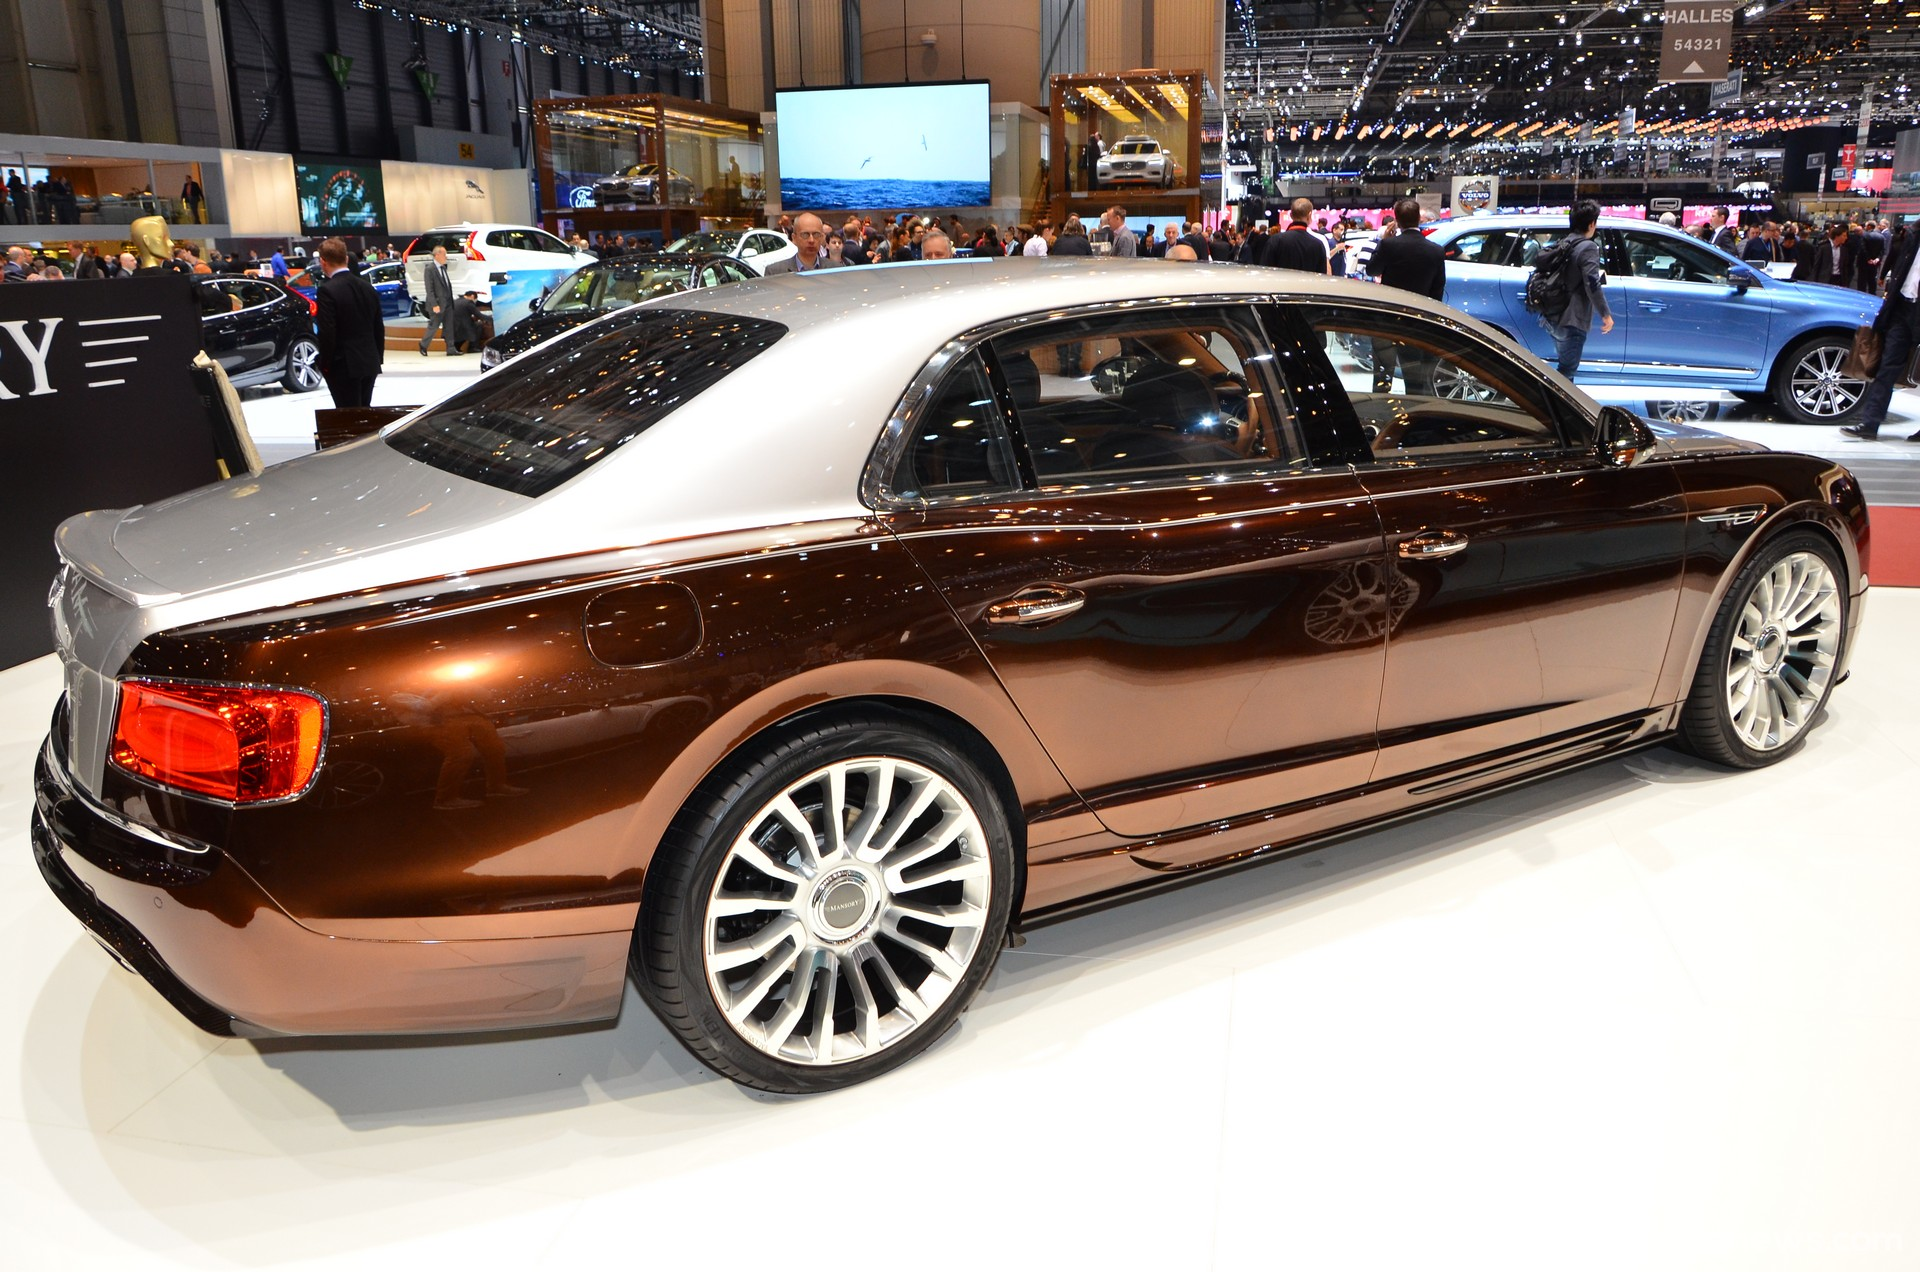 2014 Bentley Flying Spur photo - 1